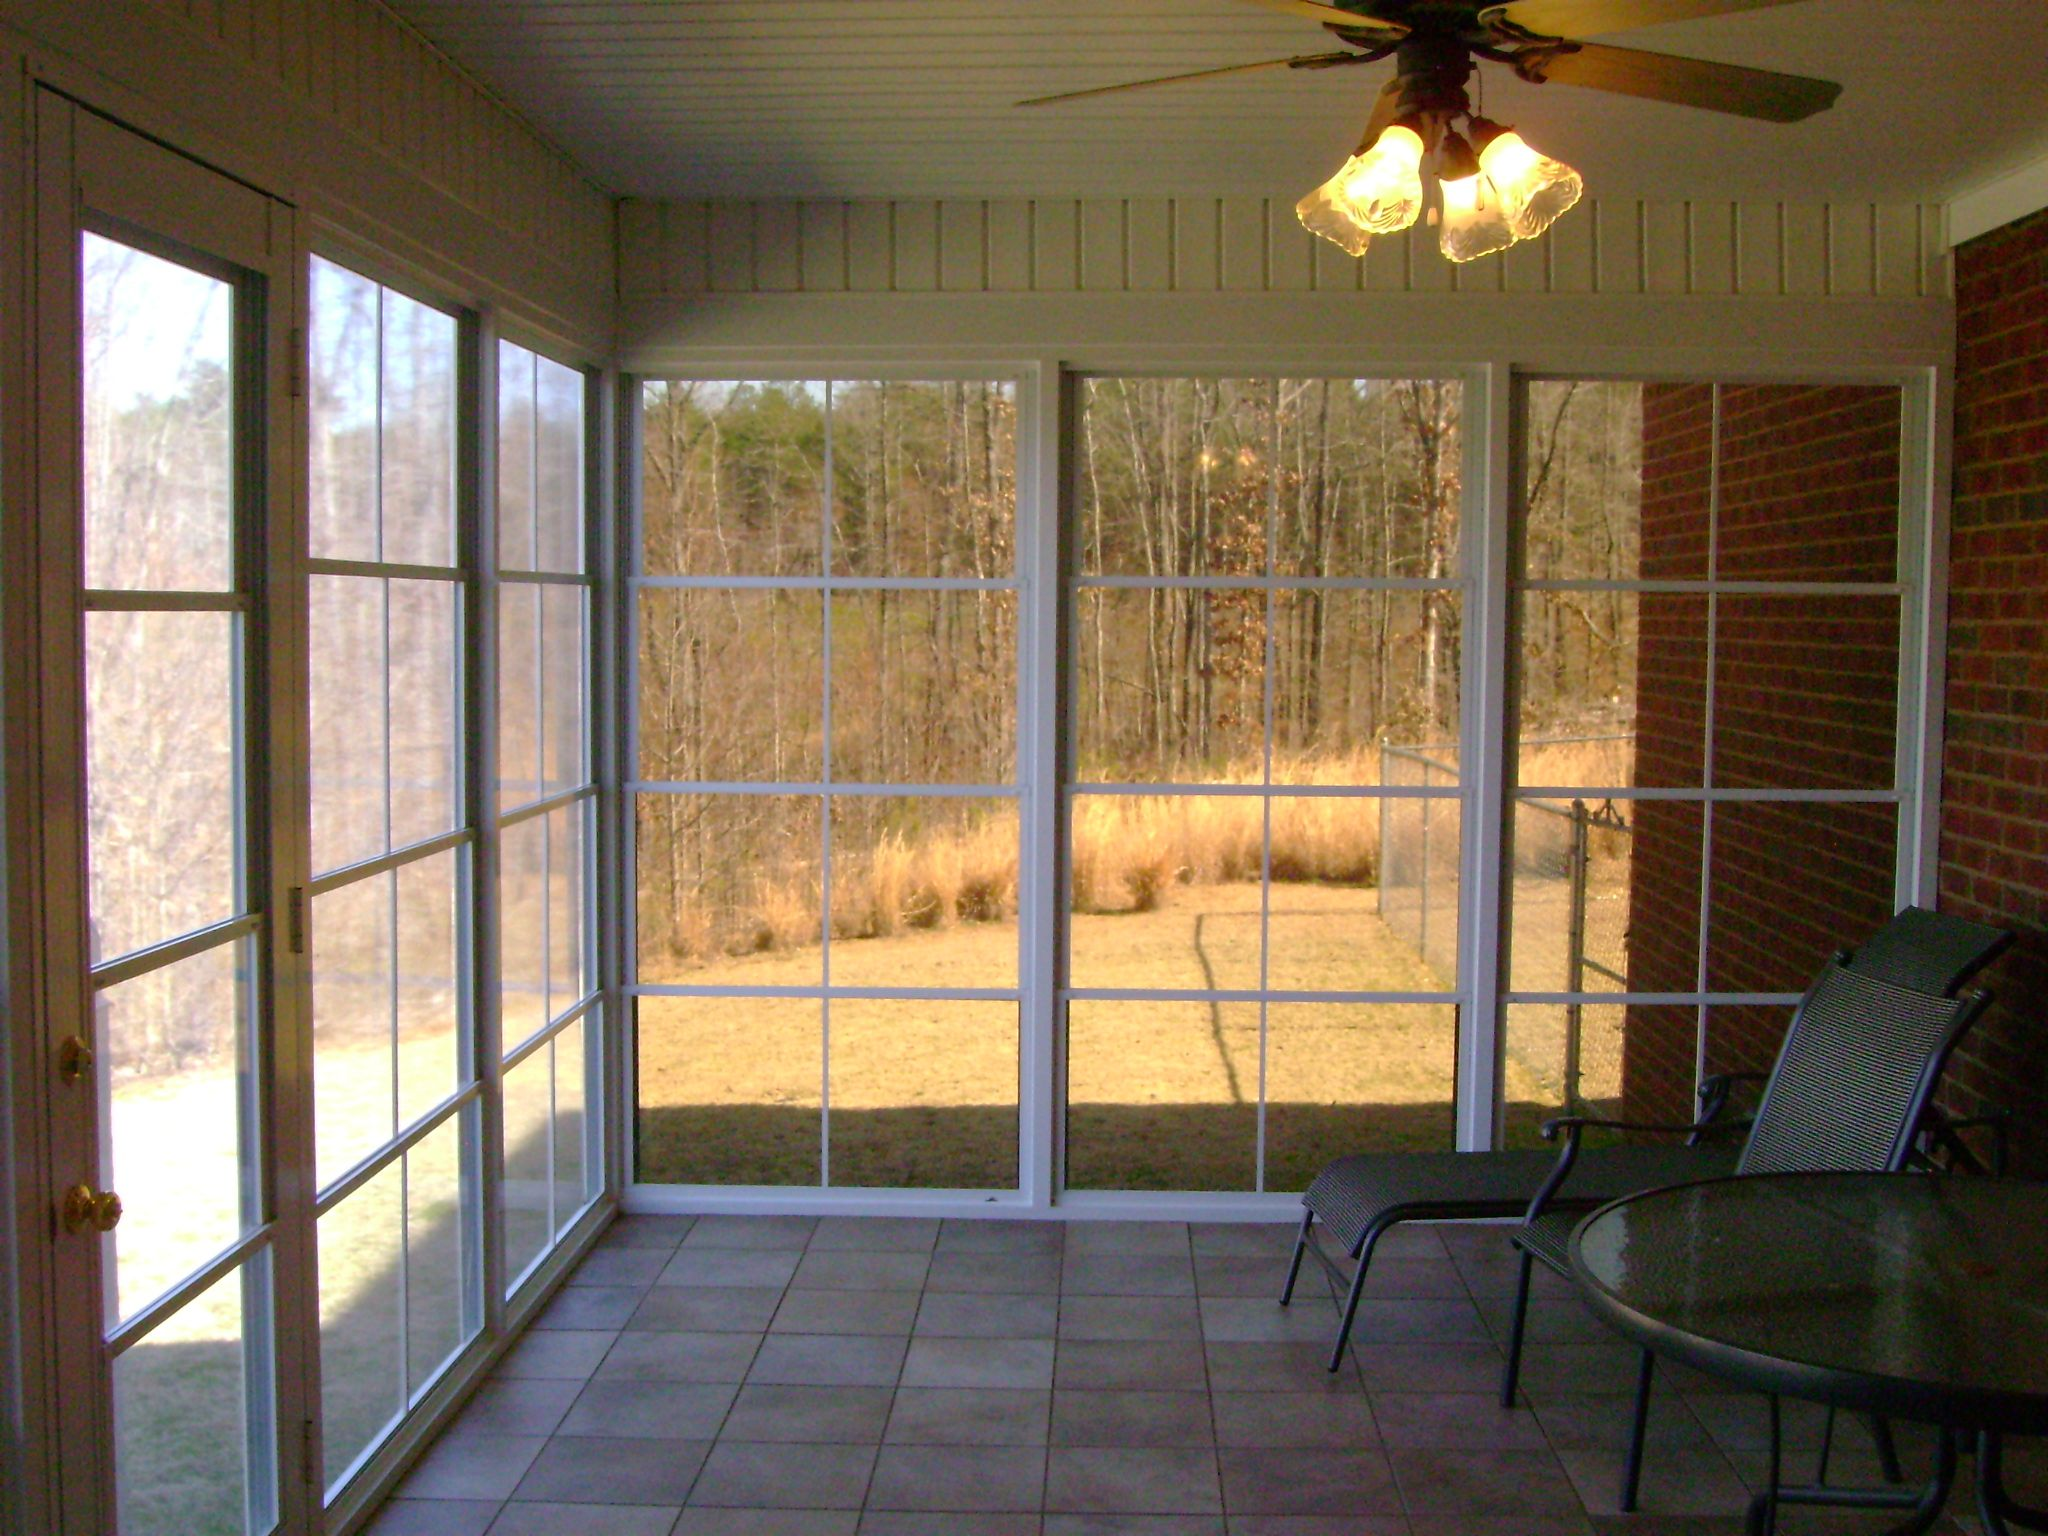 Anchor Home Services Builds Custom Screen Porch Rooms And Installs Patio Porch And Garage Enclosure Systems Sliding Patio Doors Patio Enclosures Porch Patio